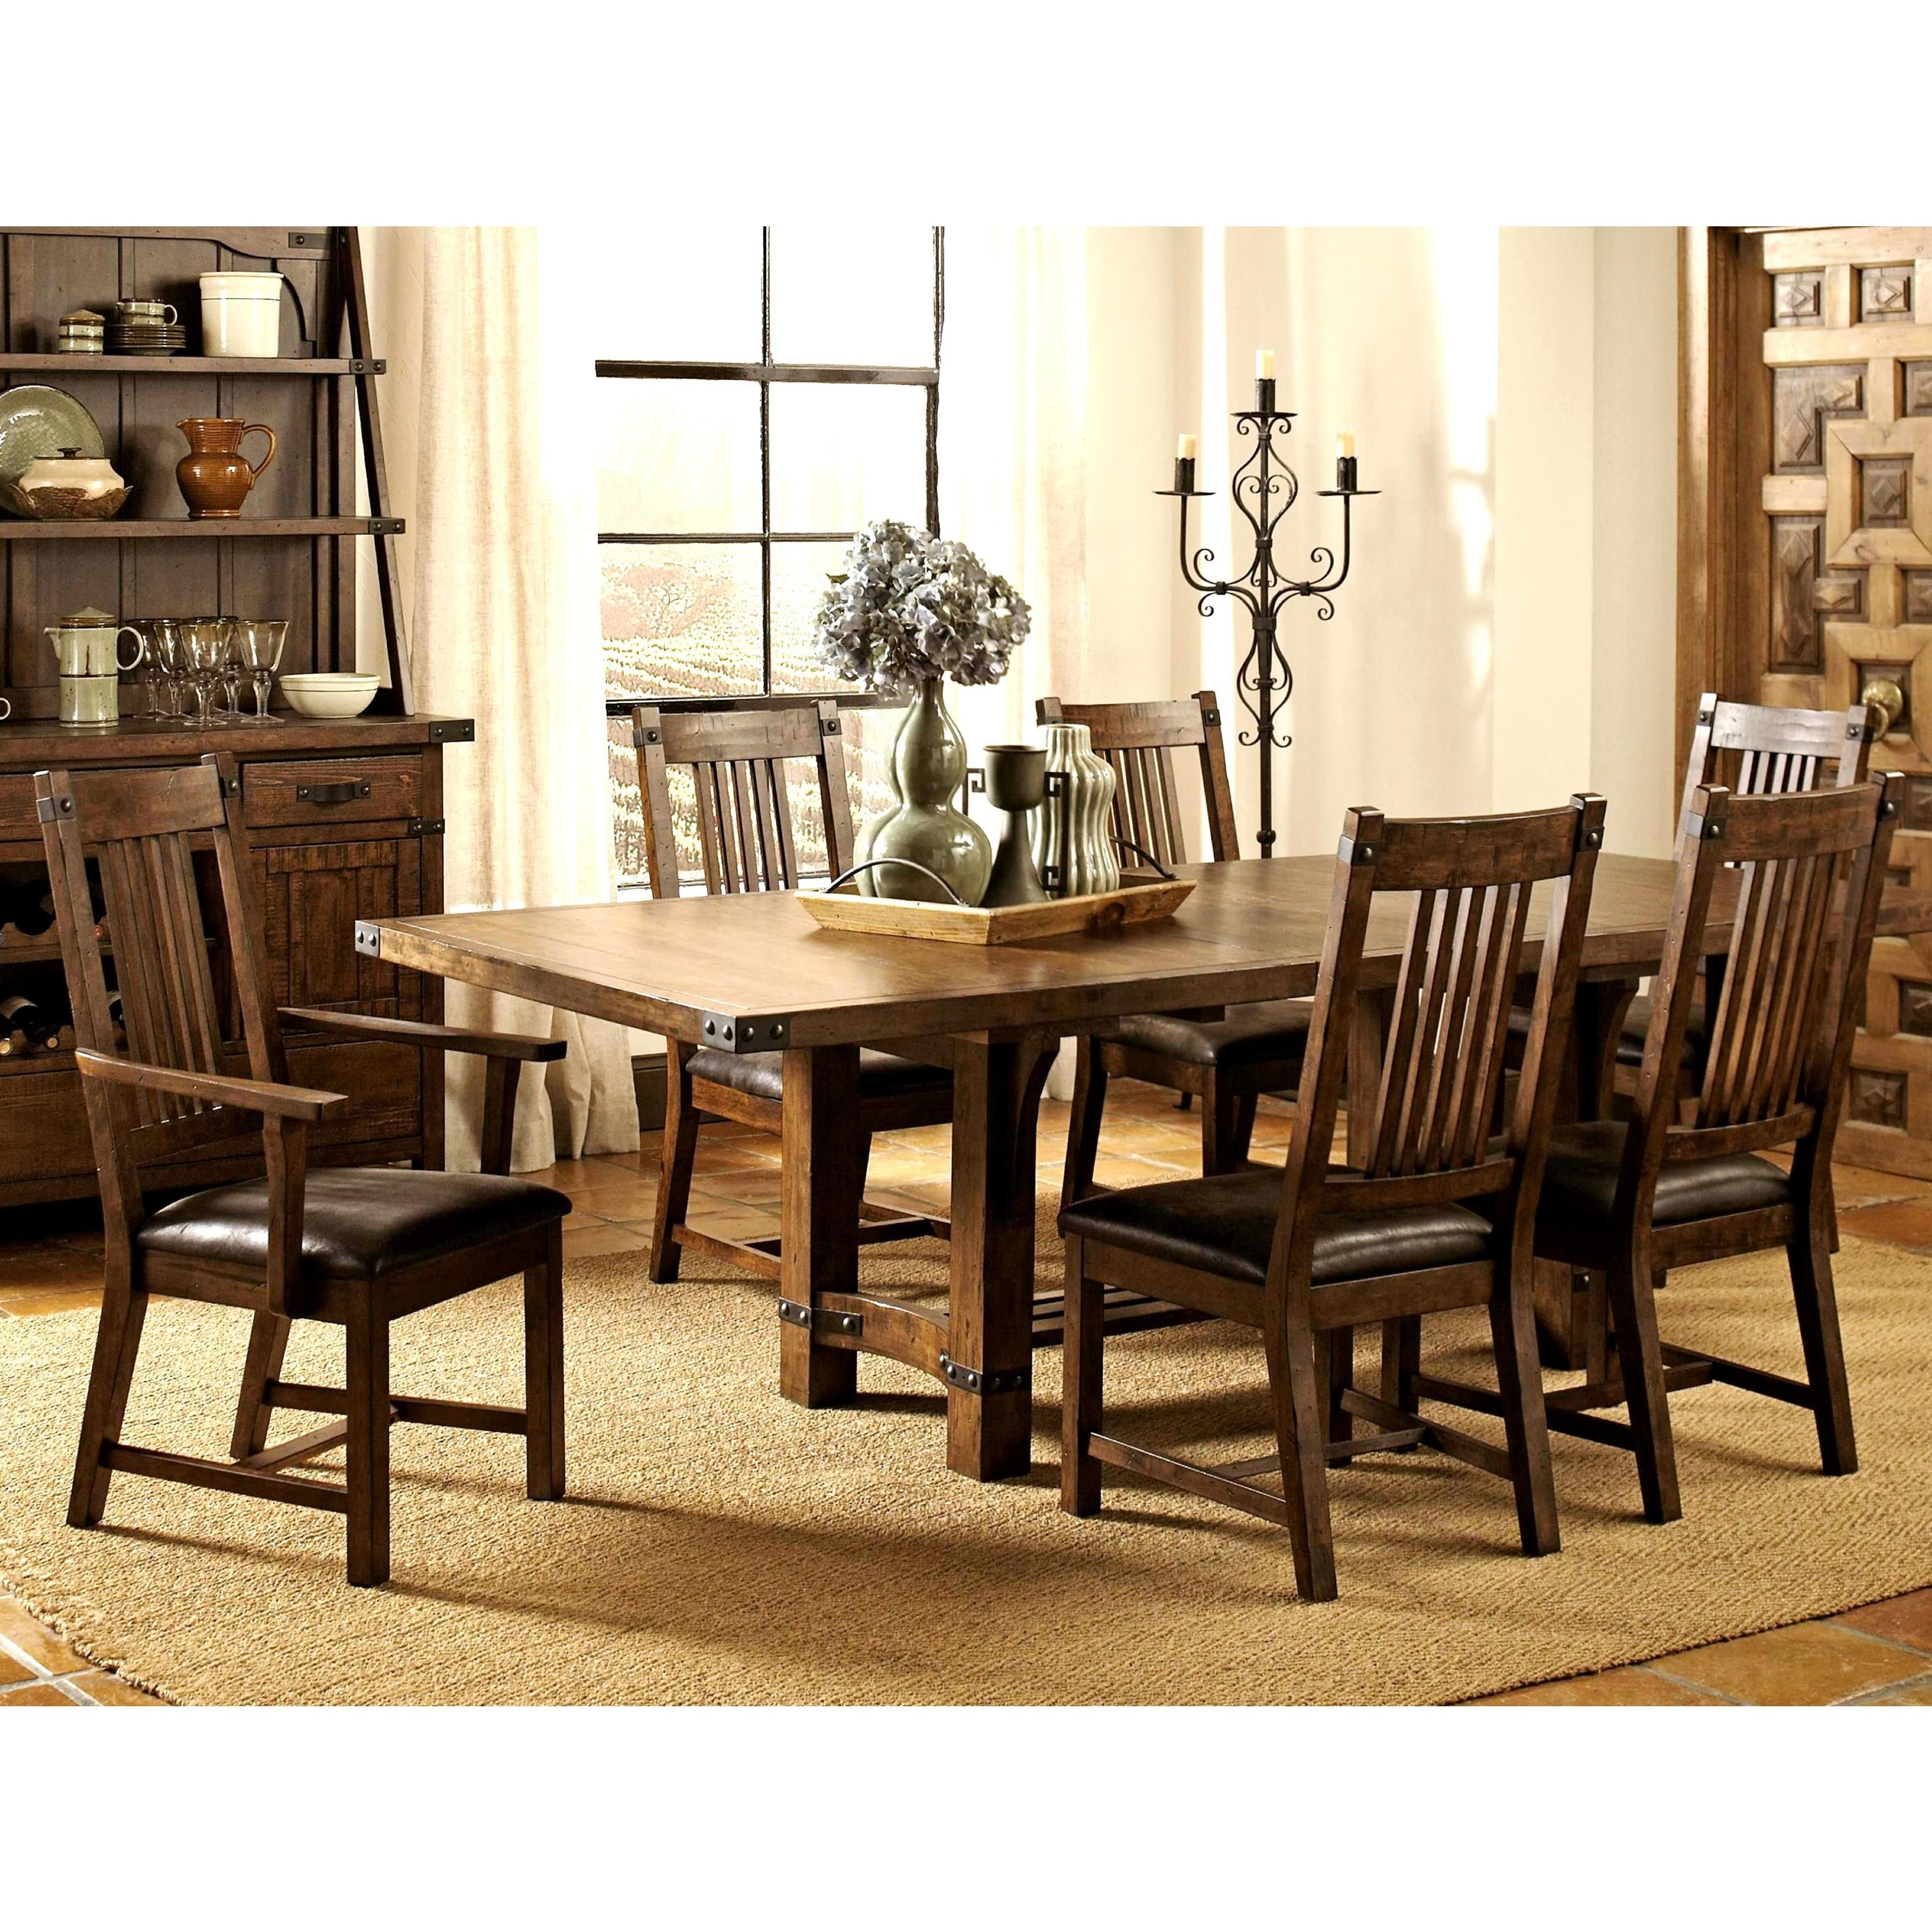 Ordinaire This Rustic Mission Style Dining Set Features A Solid Wood Construction  With Natural Wood Characters And